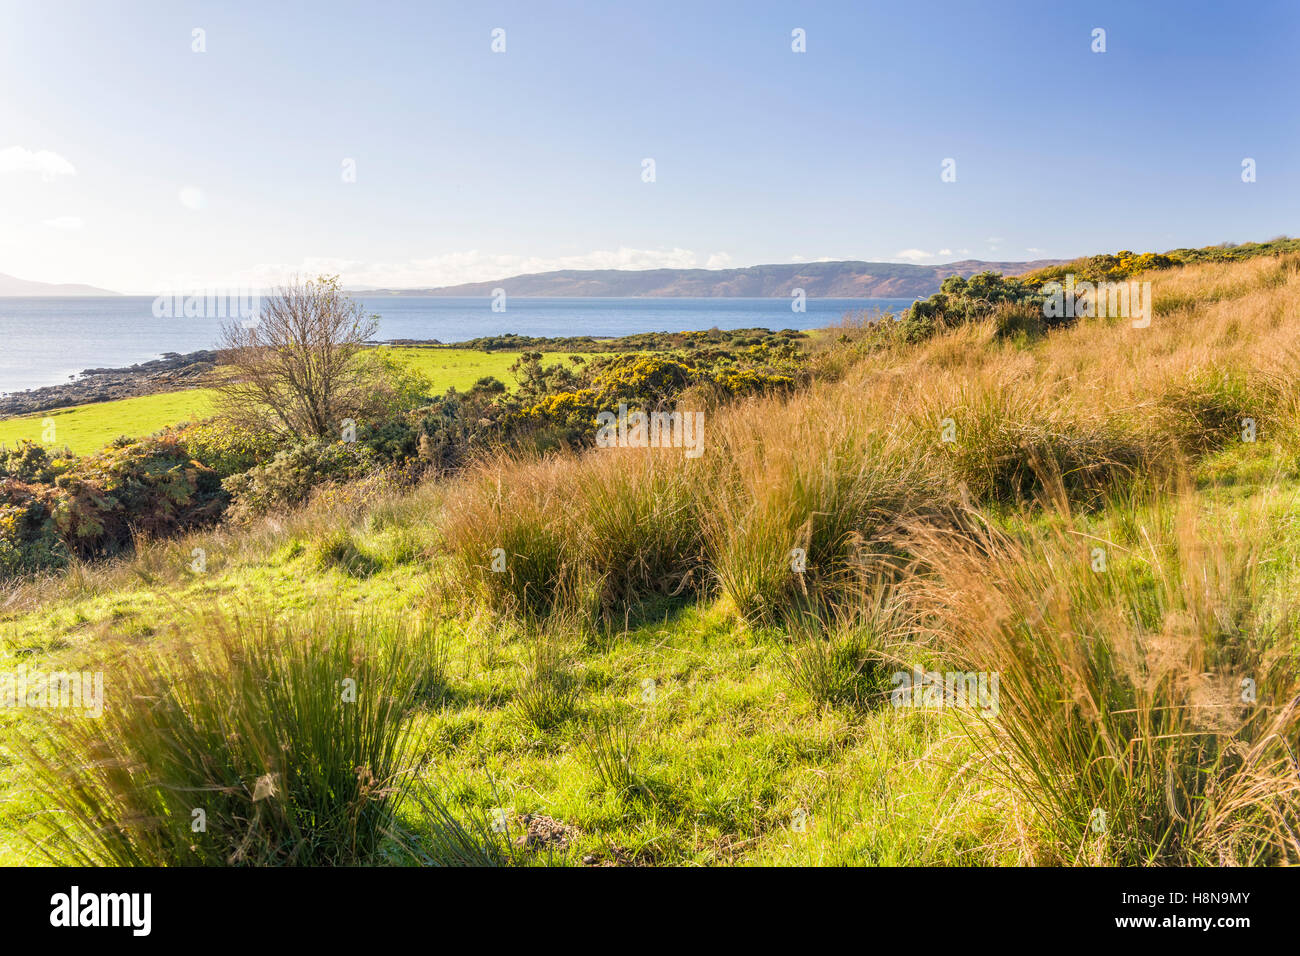 Scottish landscape scenic with vibrant grass field with sea and hills in the background  Model Release: No.  Property Stock Photo